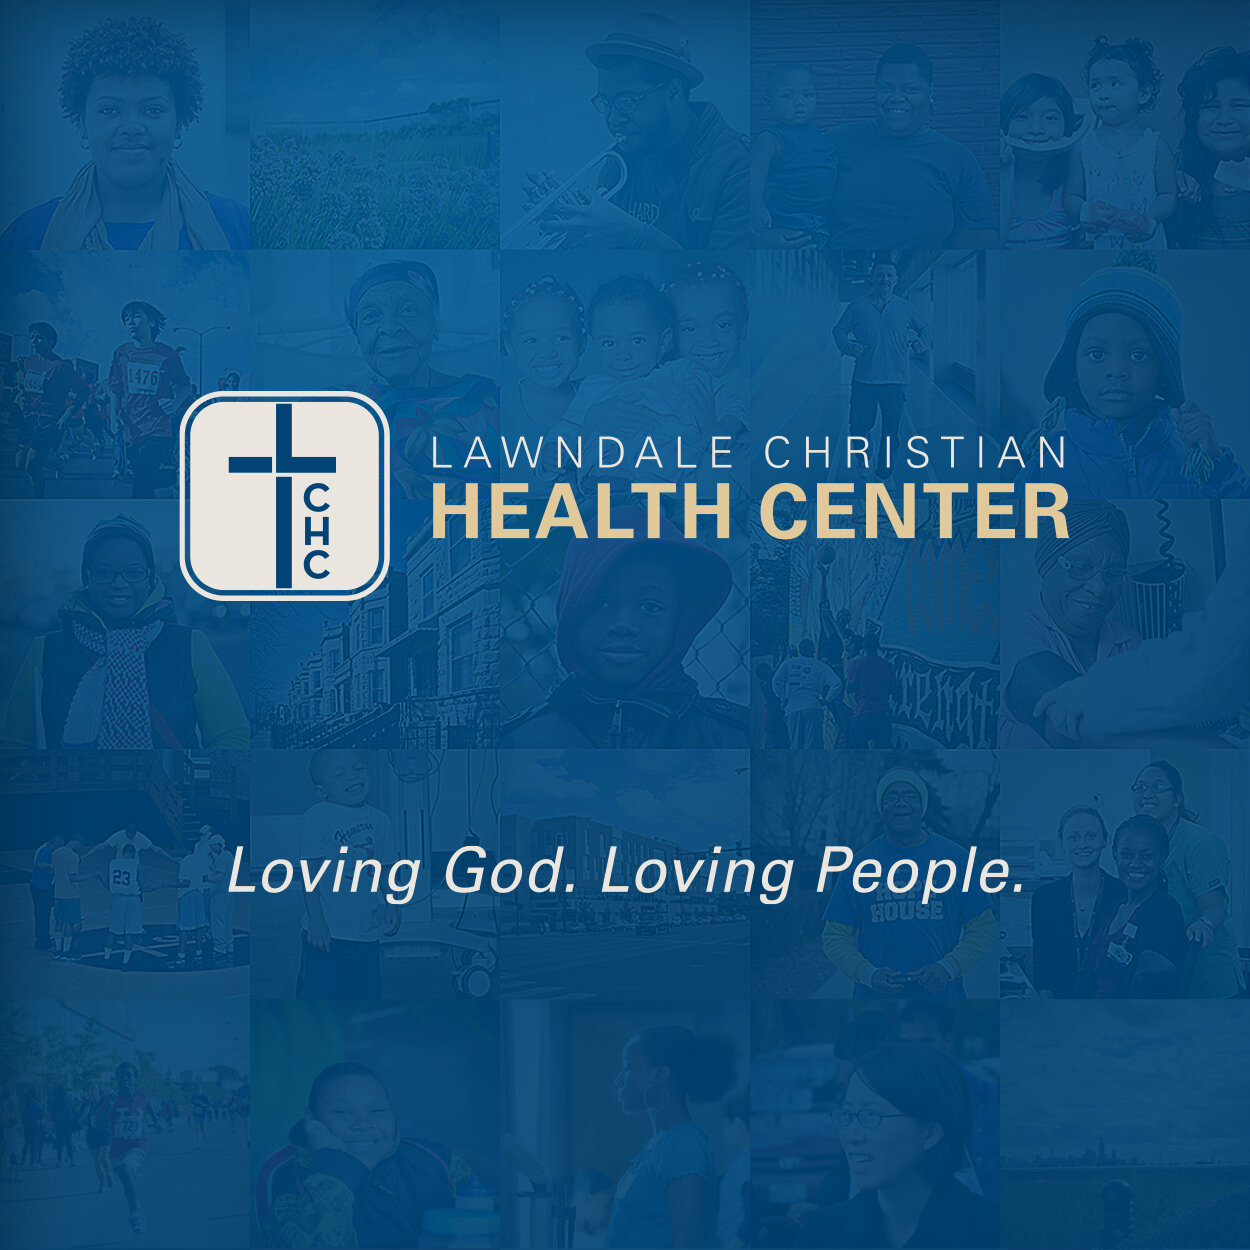 Make An Appointment Lawndale Christian Health Center